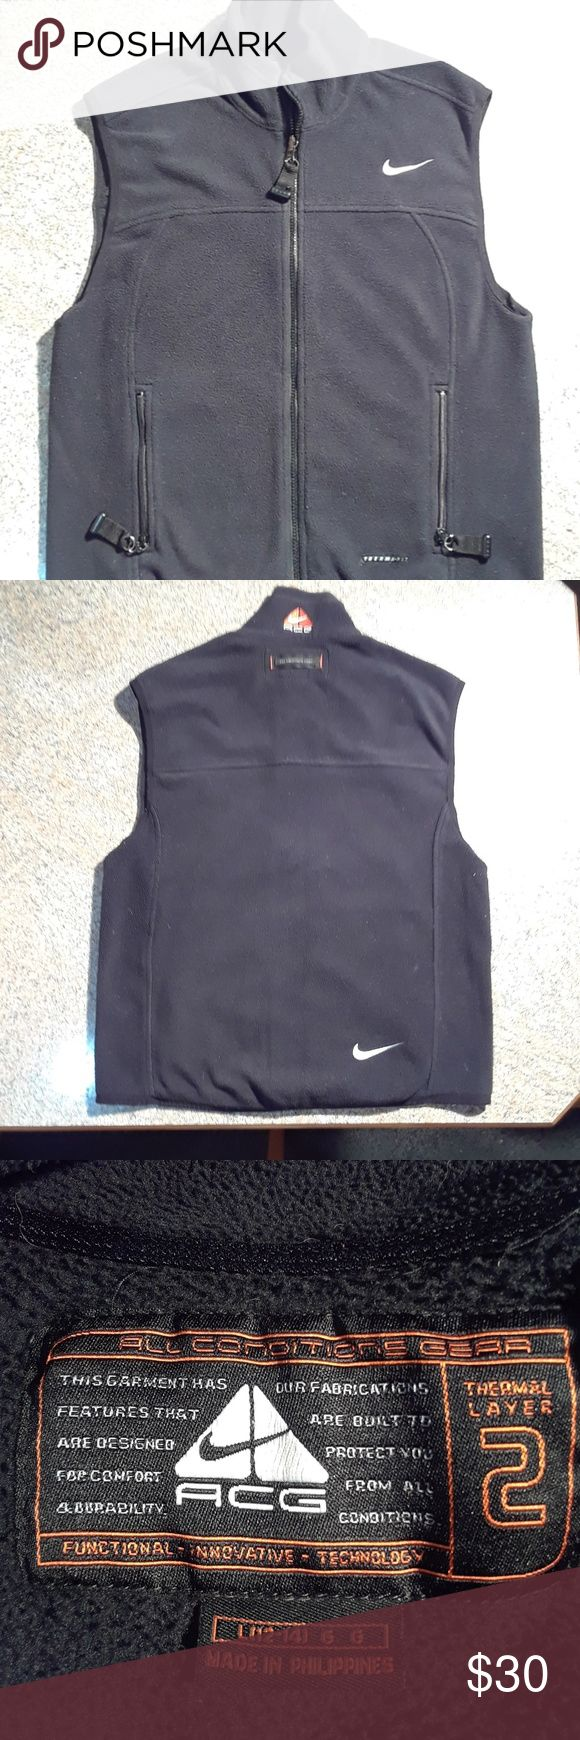 Retro Nike ACG Fleece Vest Perfect Condition Throwback Nike ACG Fleece Vest All Black... Zipper Pockets 3 Nike Checks on vest 1 front 1 back and 1 with ACG Logo on back of neck...Hard to Find item Nike ACG Jackets & Coats Vests